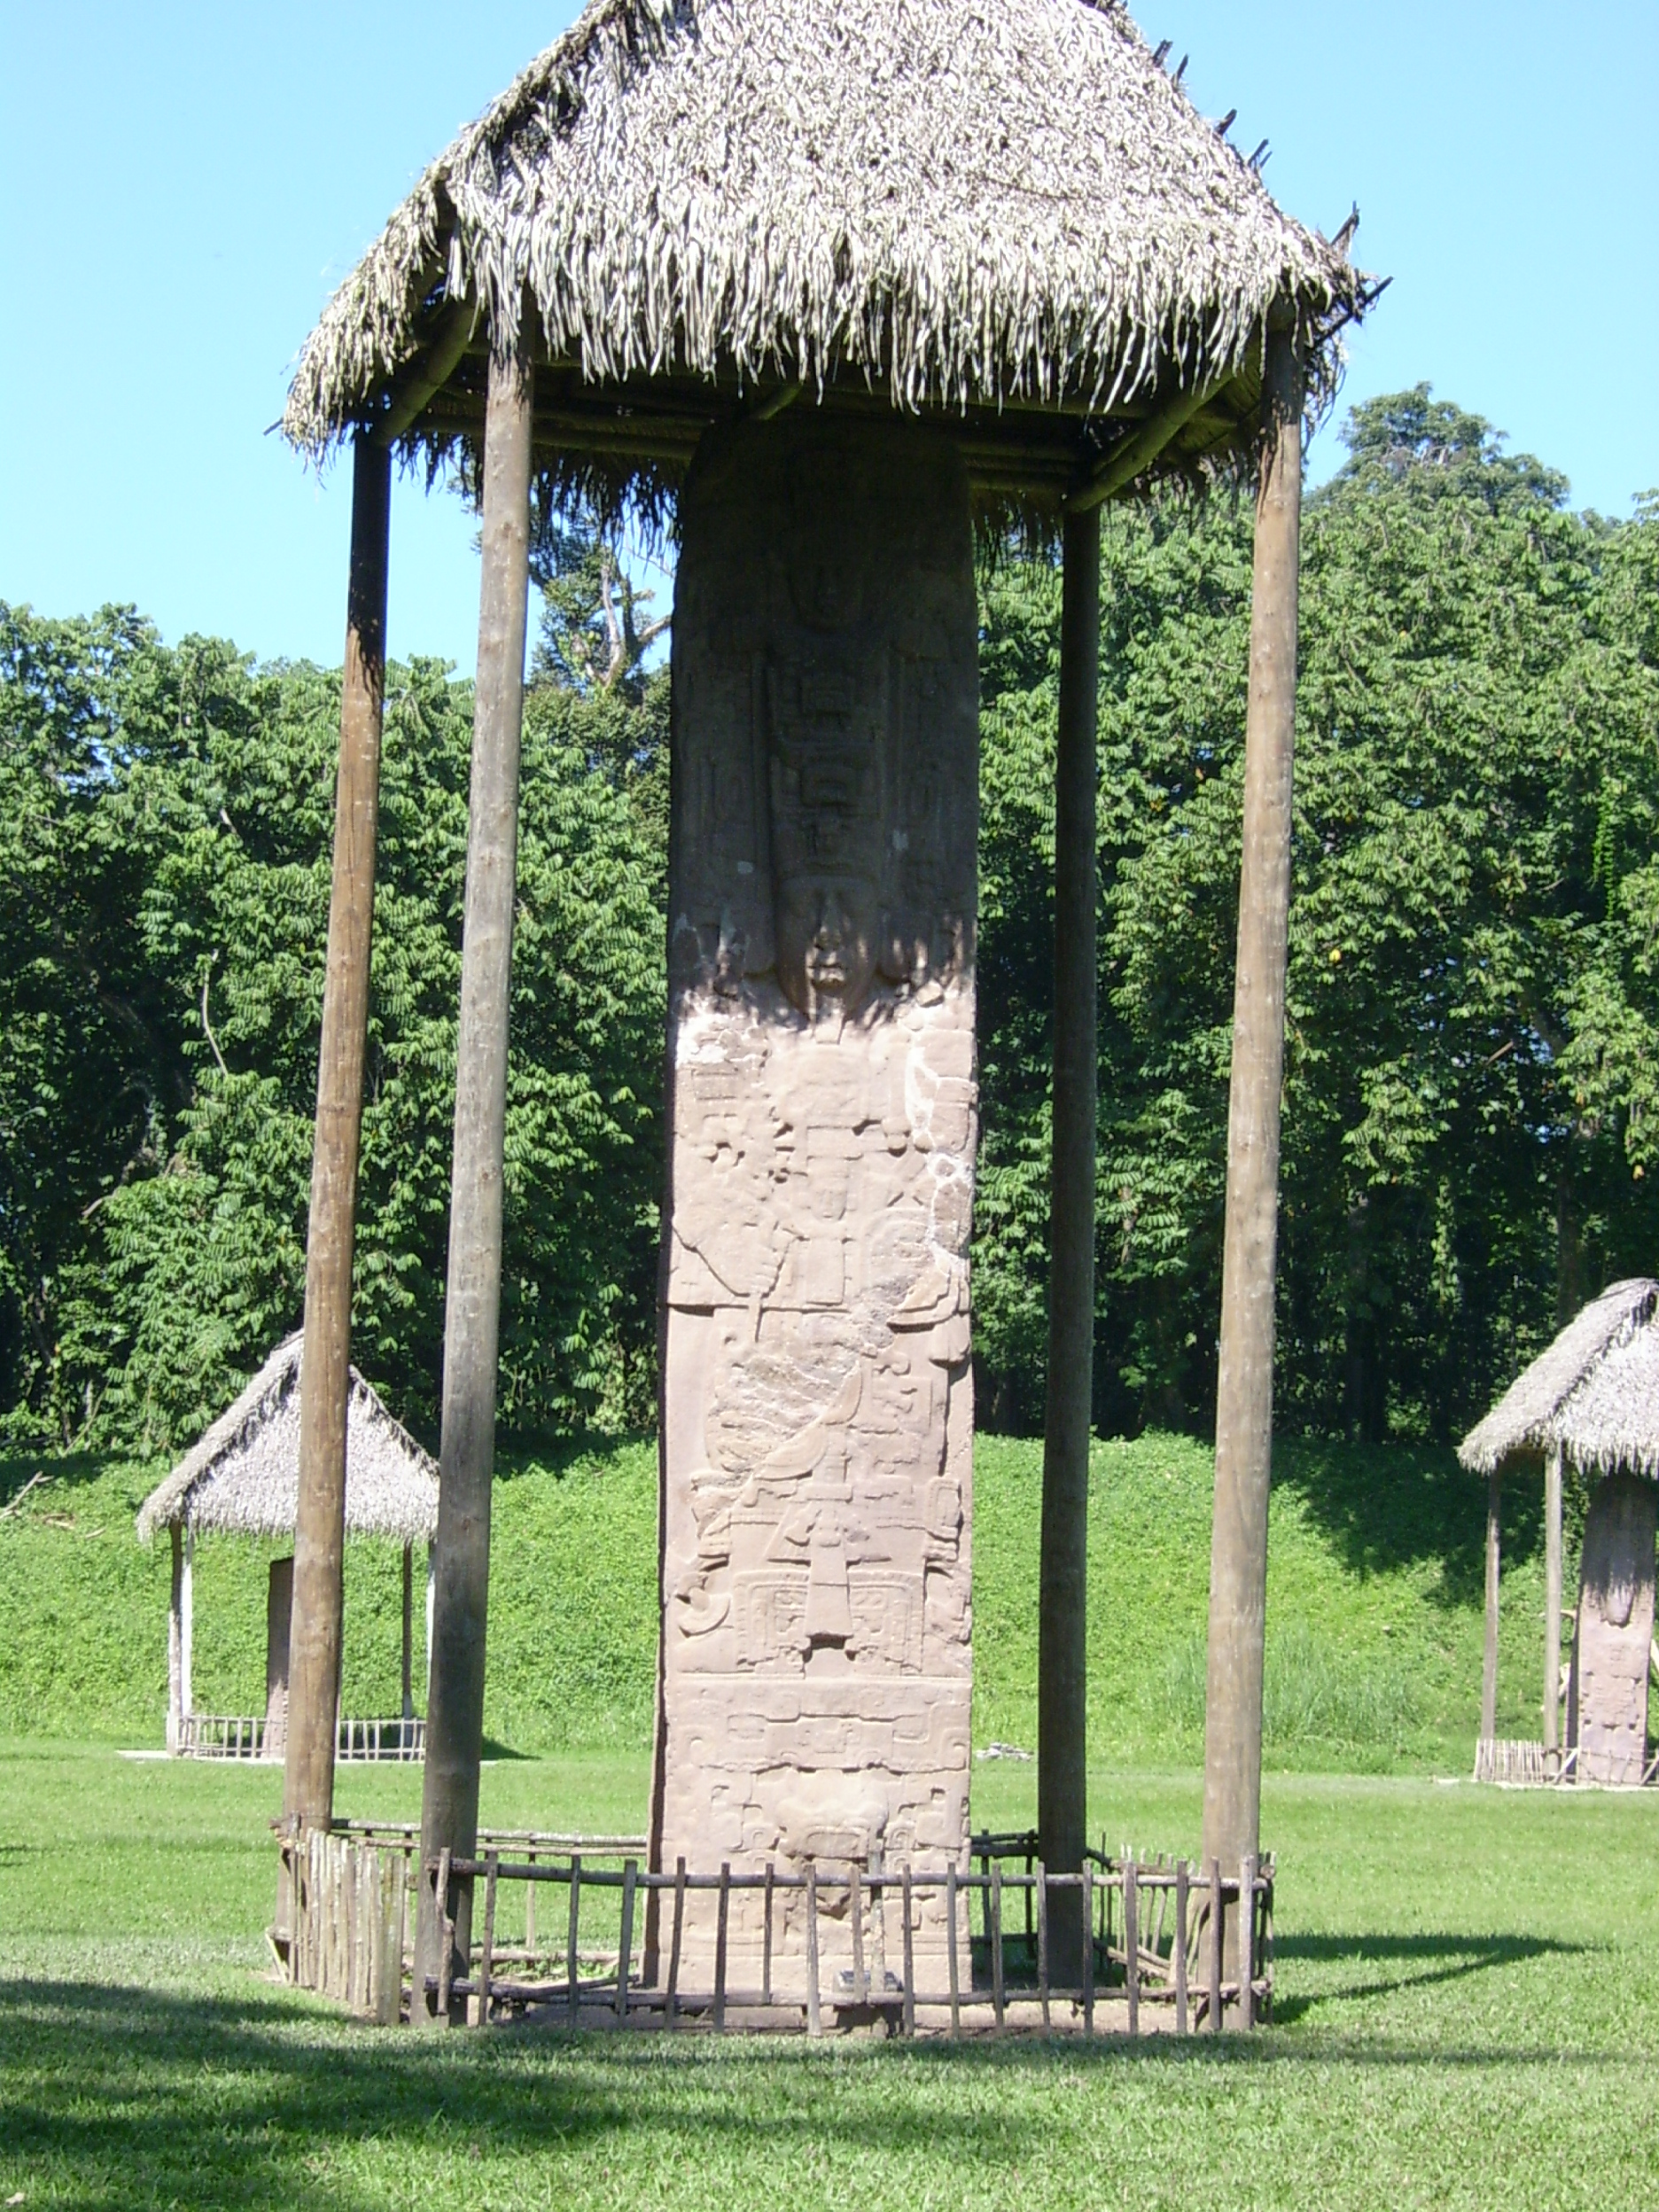 Stela E in Quiriguá, Guatemala, is 12 meters tall, making it the highest in Maya culture and possibly the largest freestanding stone monument in the New World. It was erected on January 22, 771.